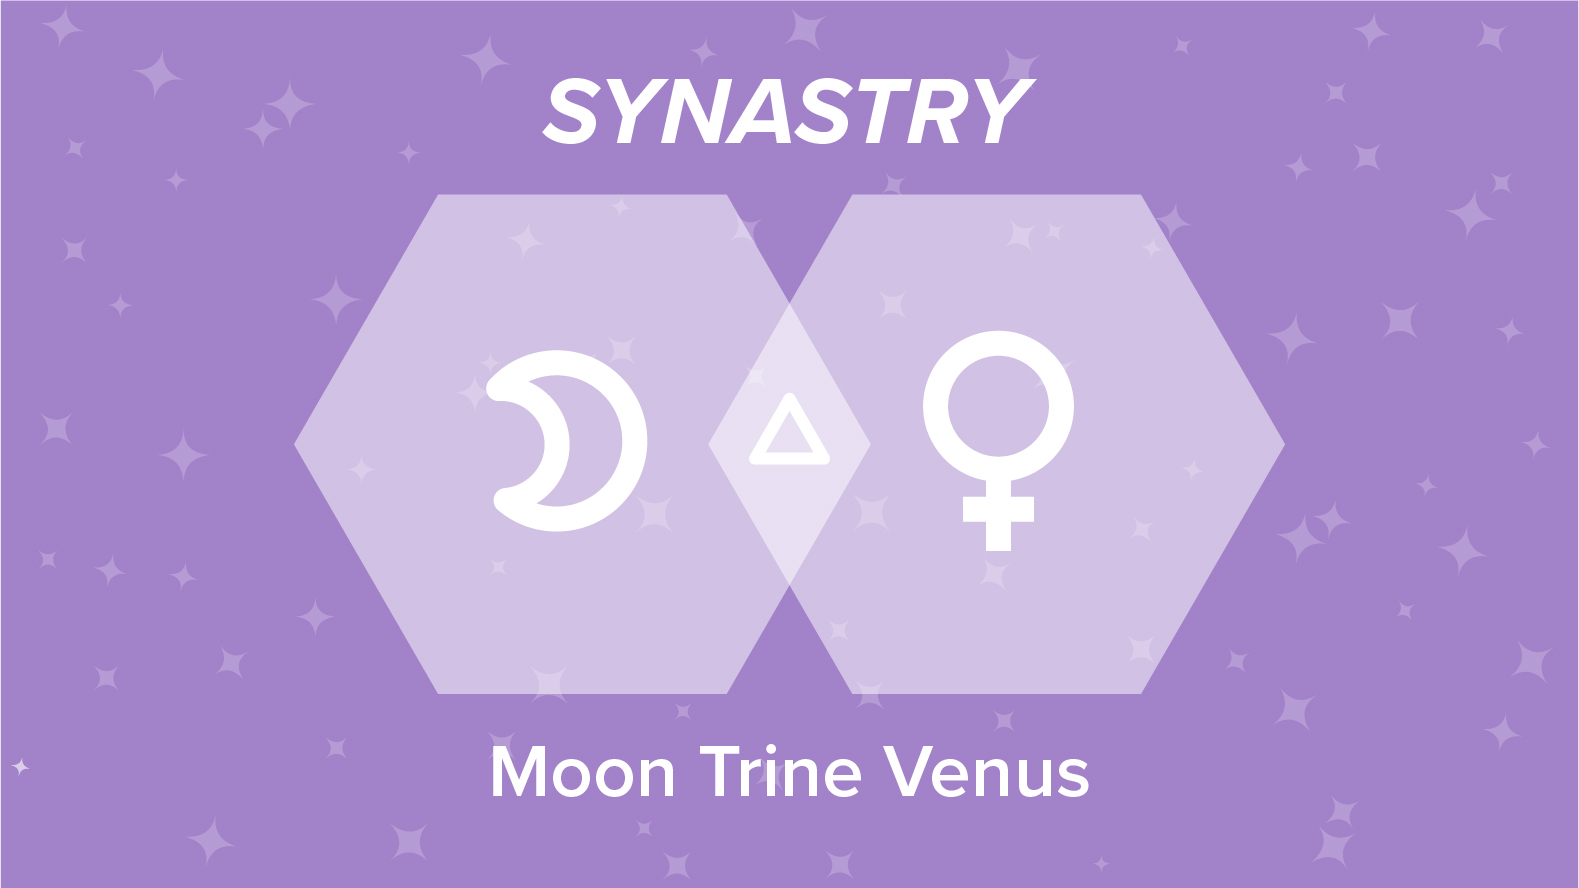 Moon Trine Venus Synastry: Relationships and Friendships Explained